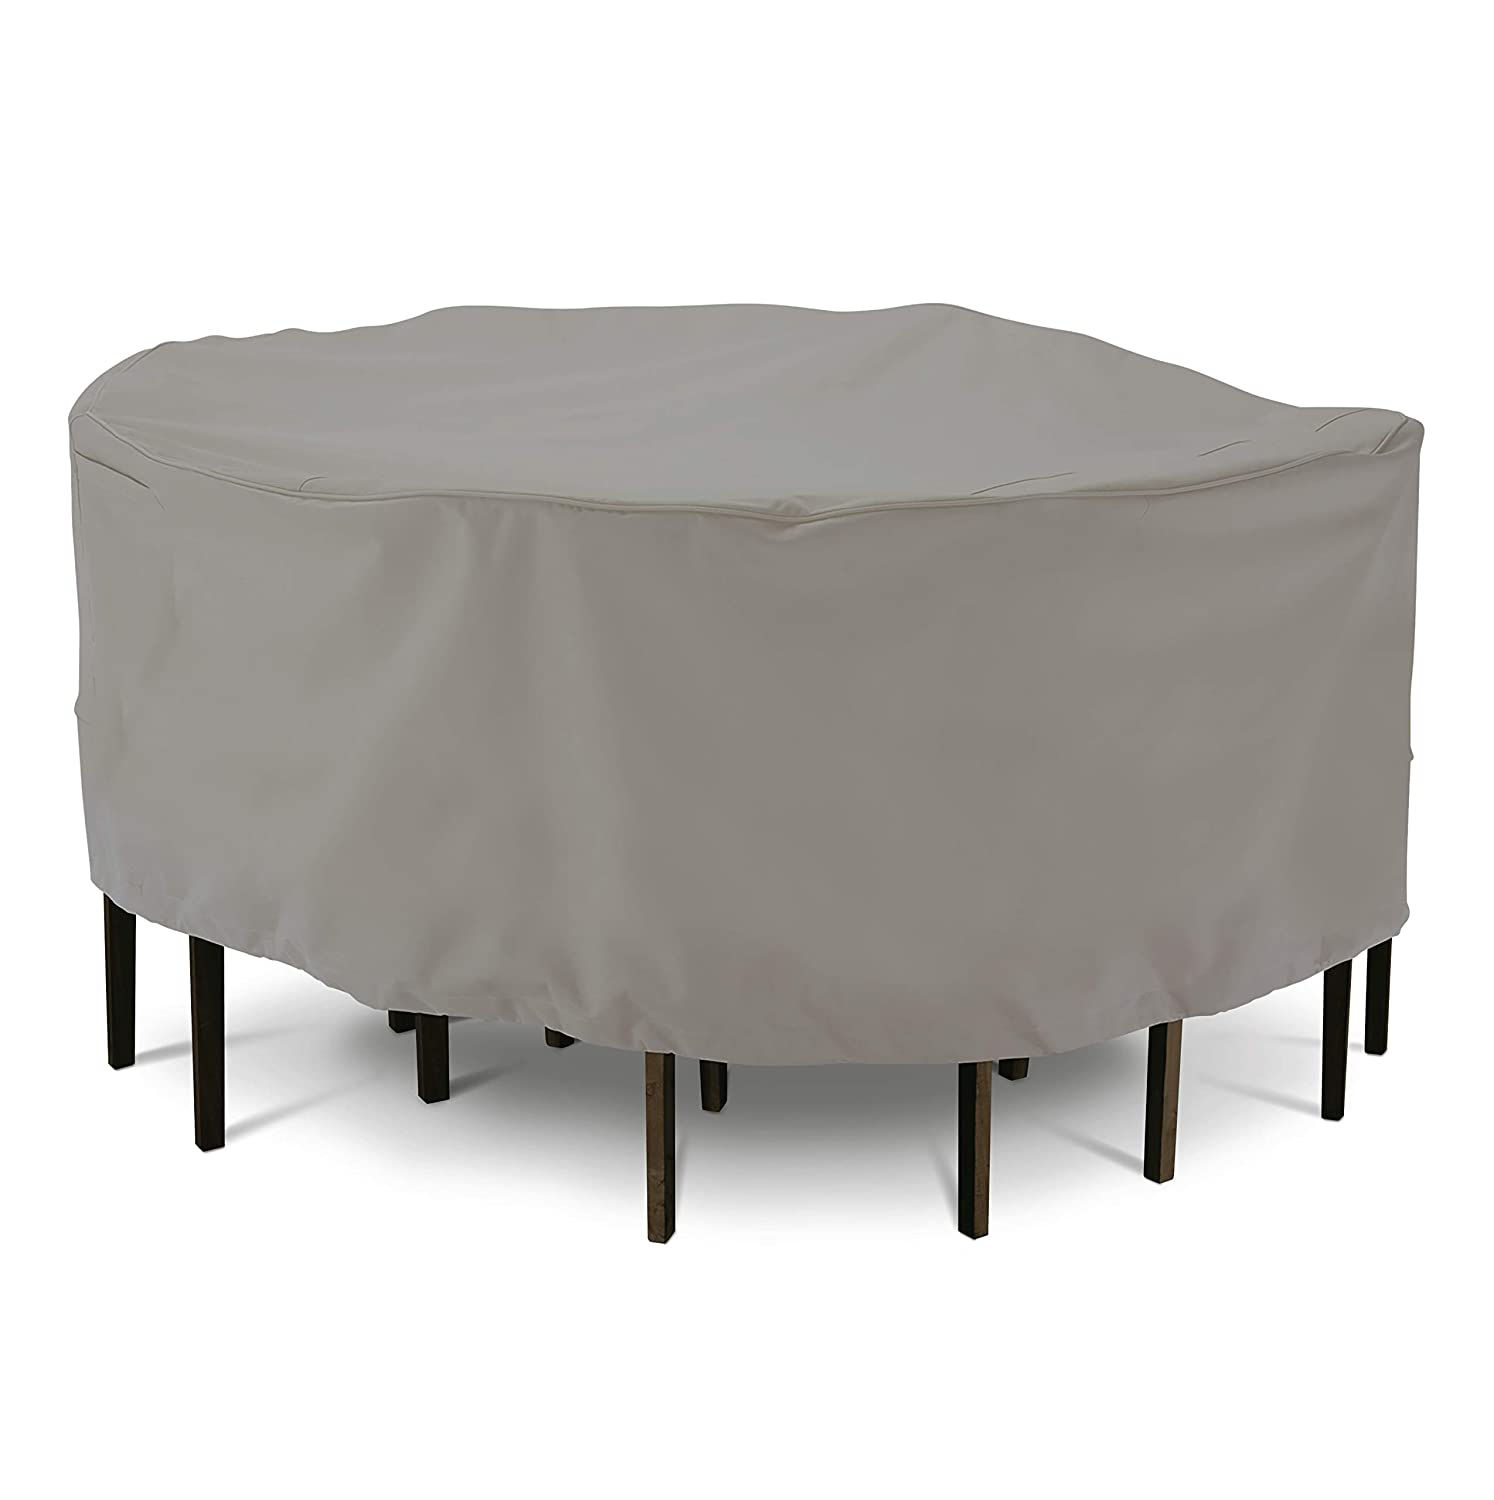 AmazonBasics Patio Round Table Cover, 48 , Grey